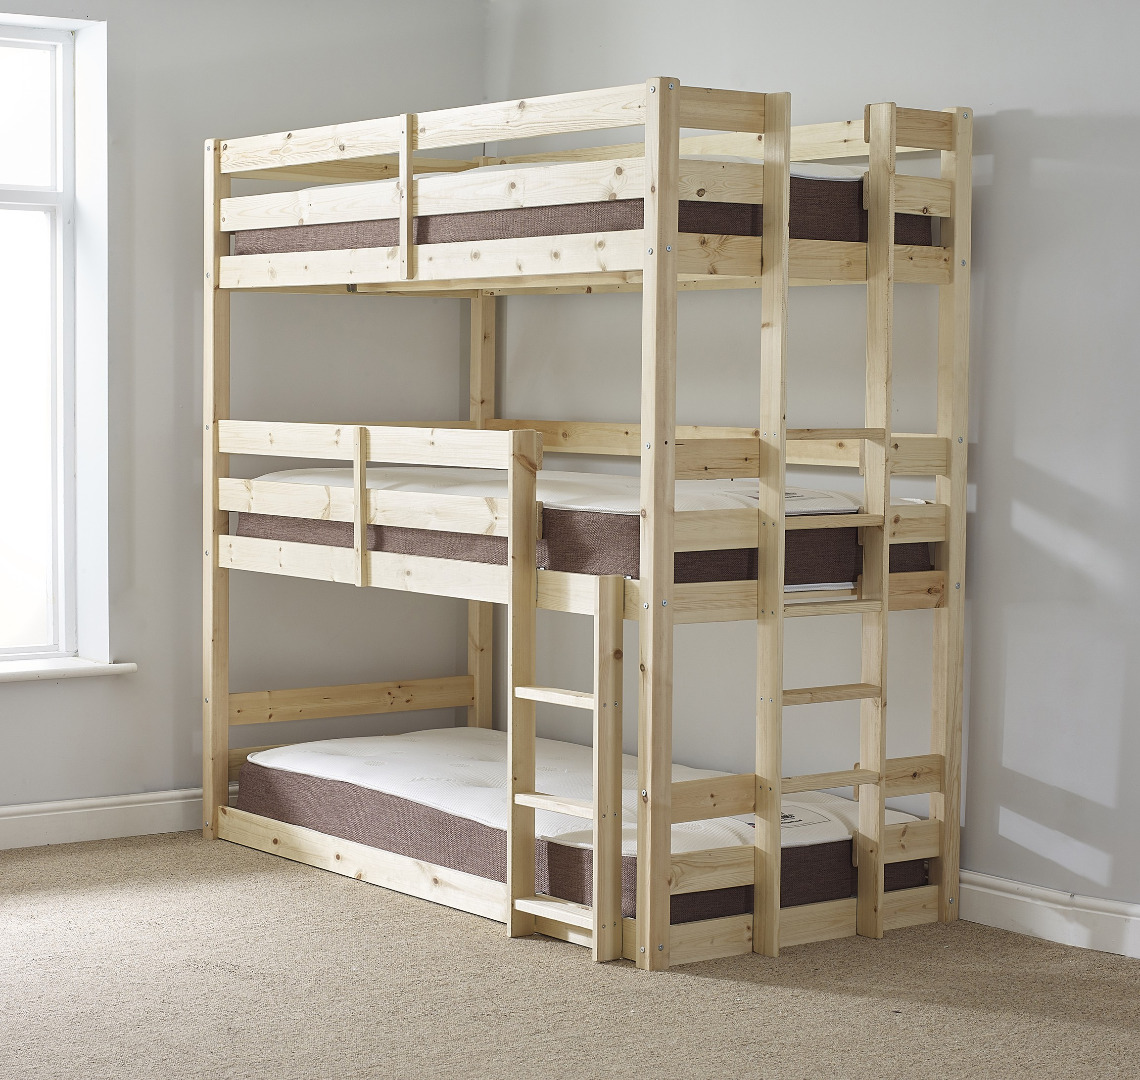 Pandora 2ft 6 Small Single 3 Tier HEAVY DUTY Solid Pine HIGH Triple Sleeper Bunk Bed